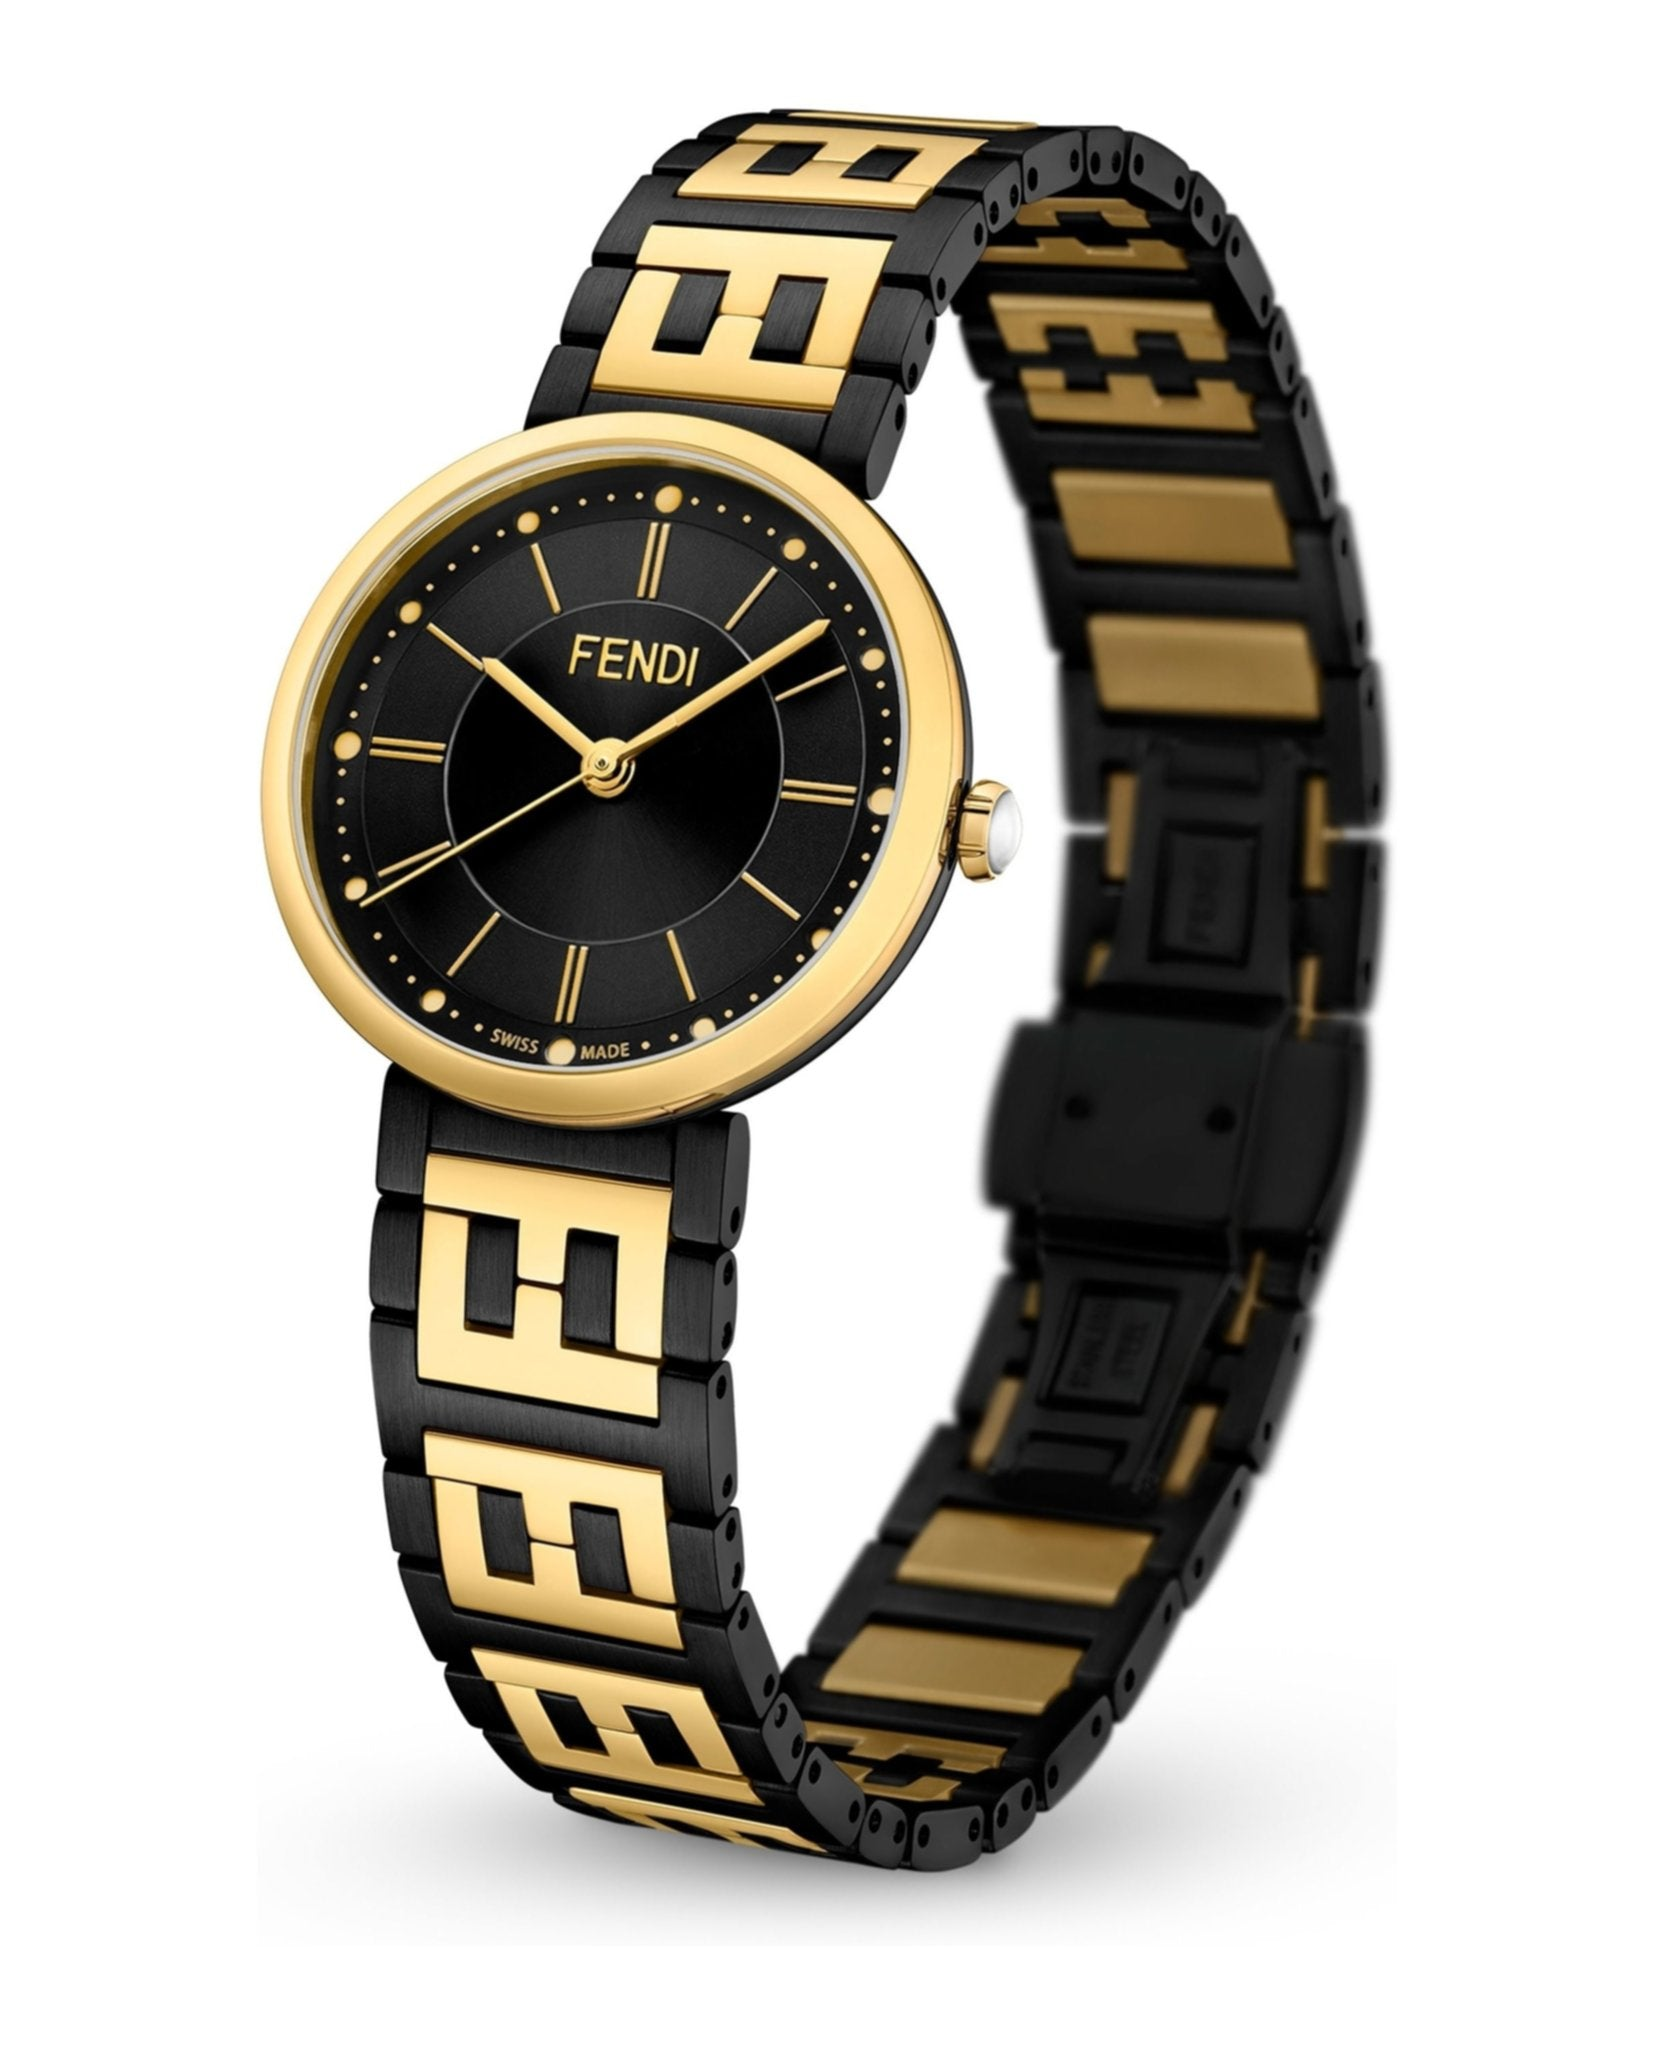 Fendi Forever Fendi Watch